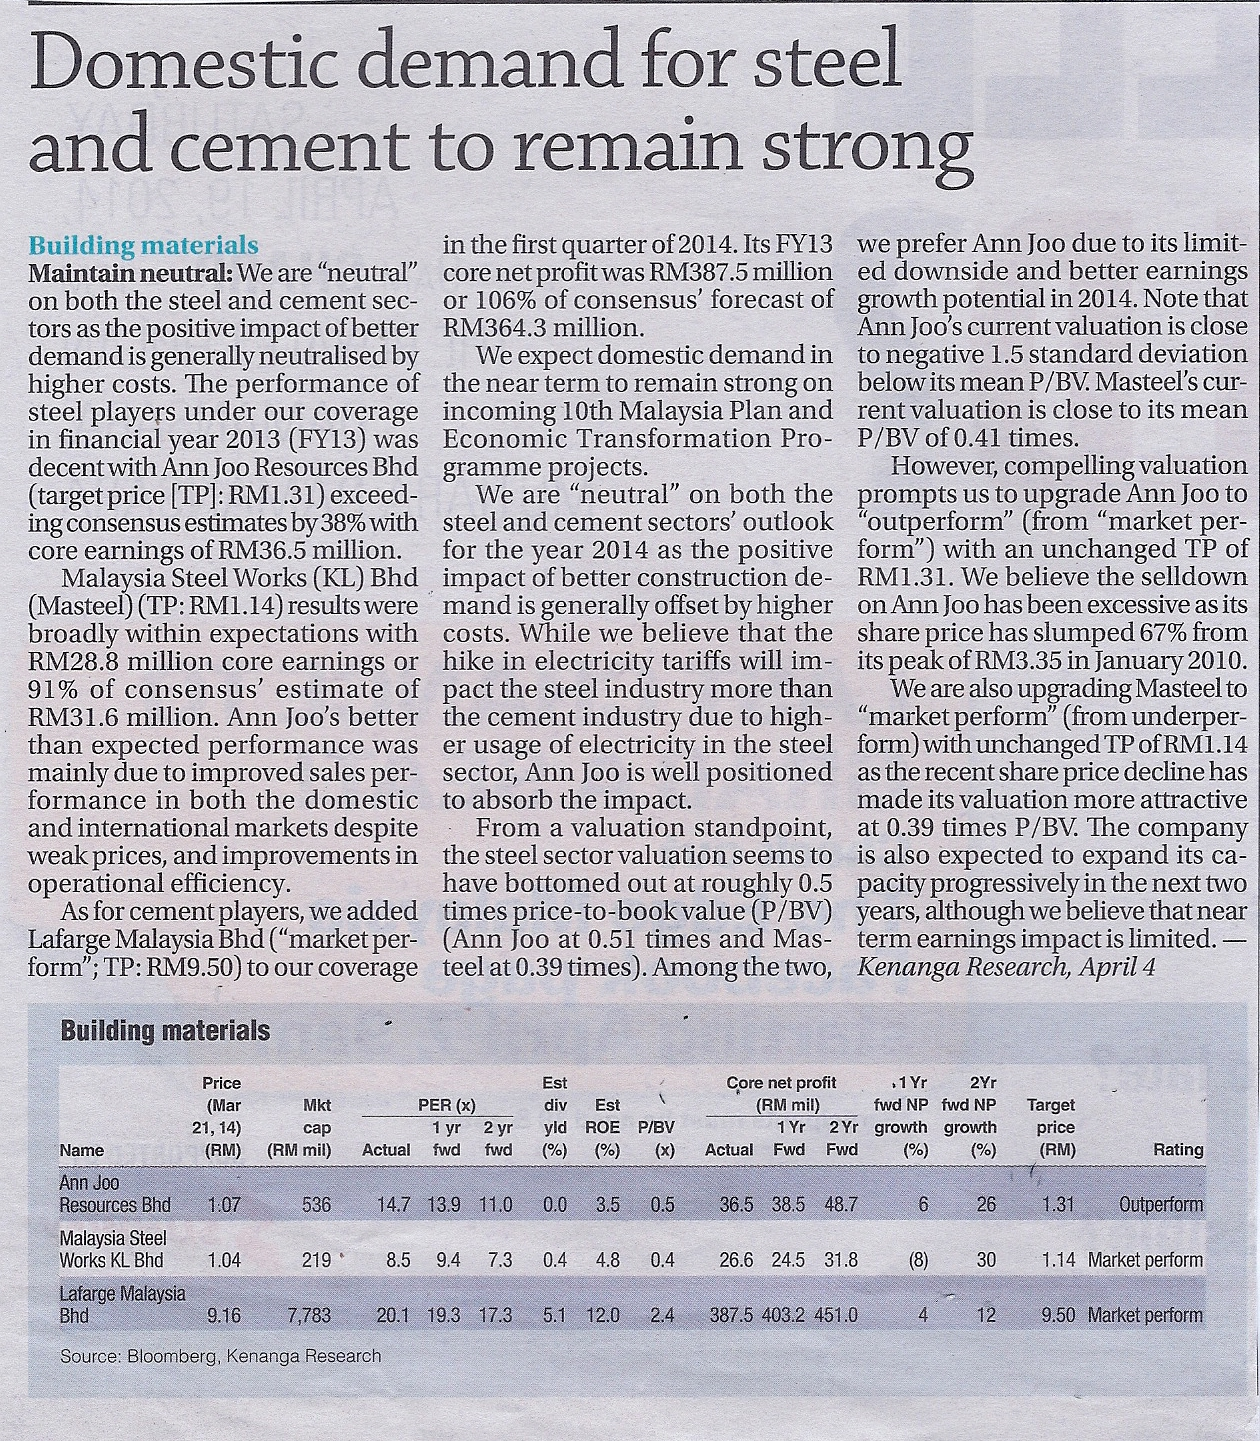 Domestic demand for steel and cement to remain strong